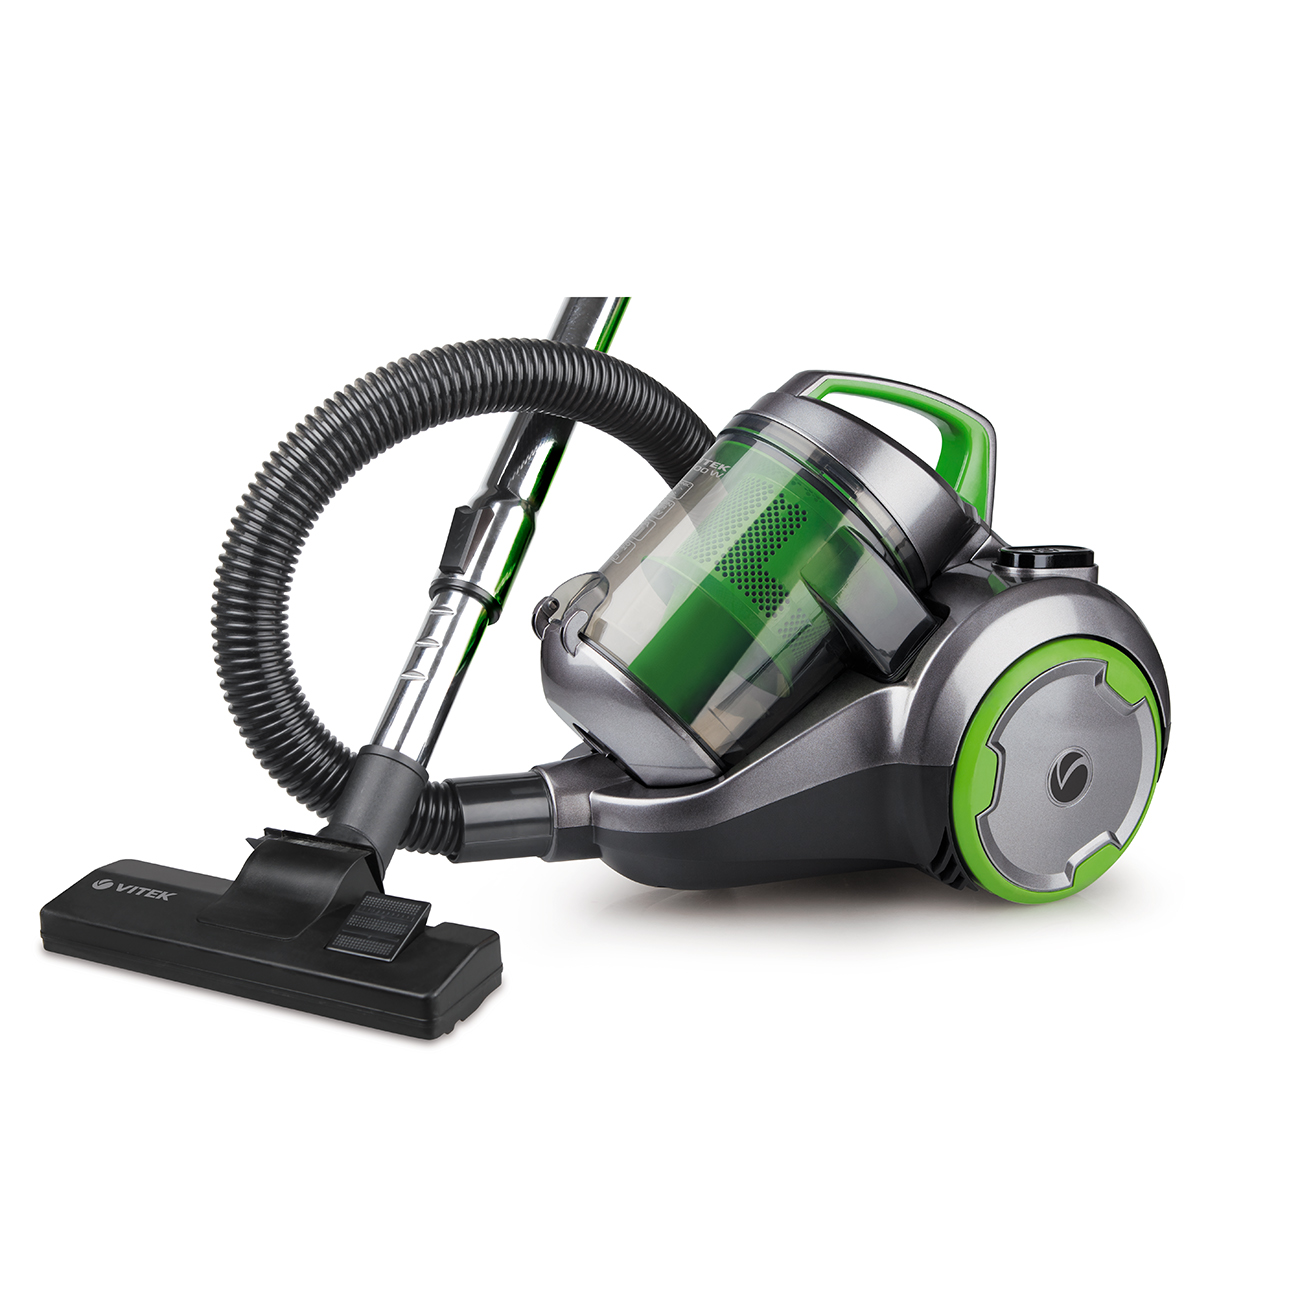 The electric vacuum cleaner Vitek VT-1894 G